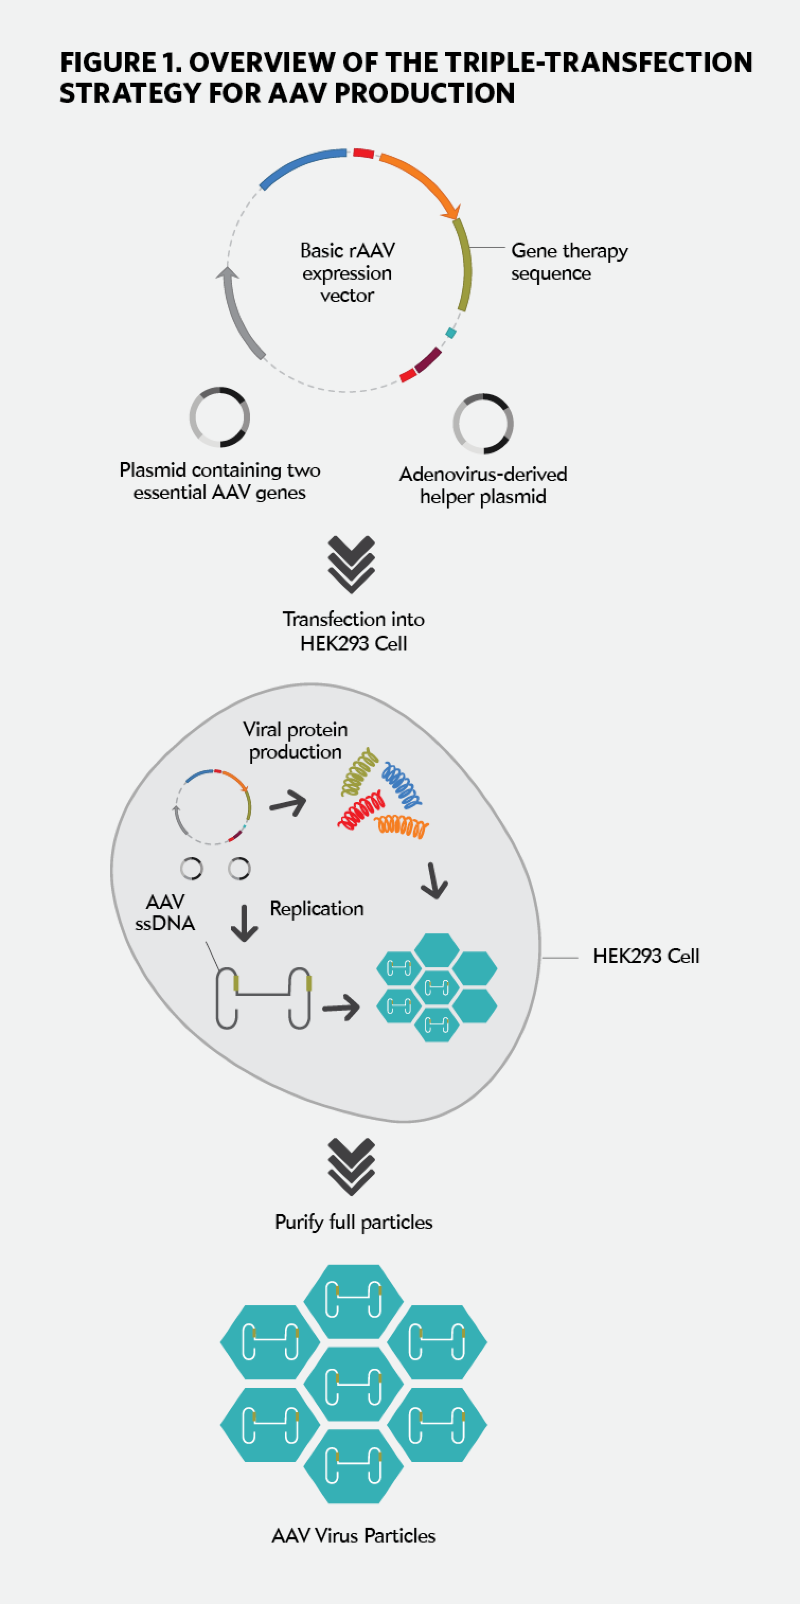 Overview Of The Triple Transfection Strategy For AAV Production